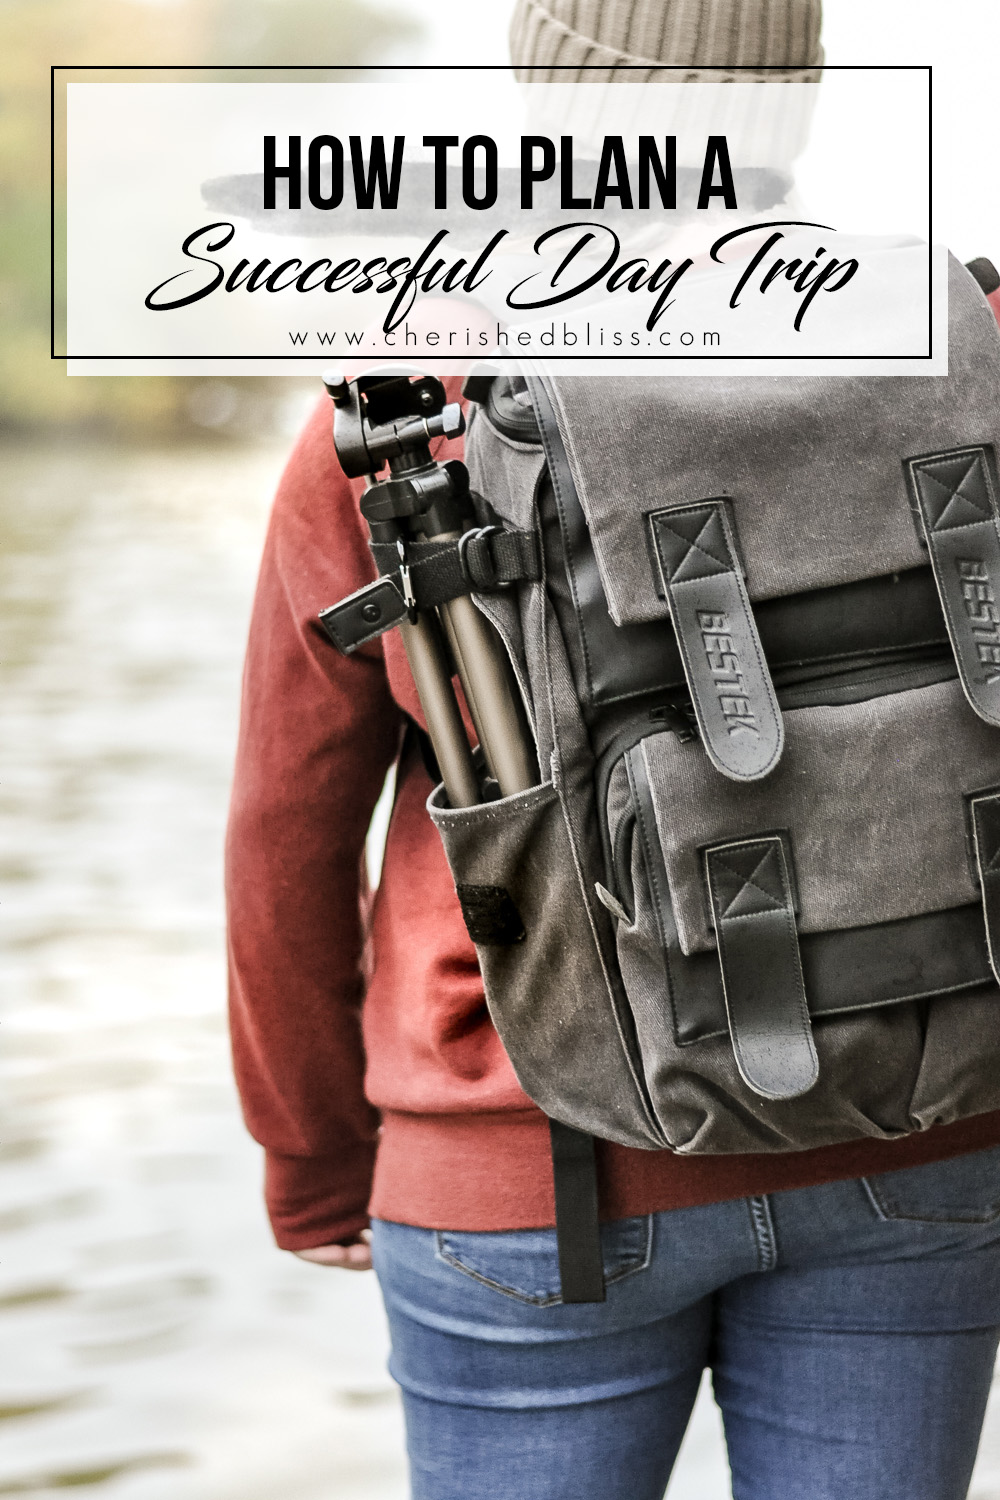 Have you been wanting to Plan a Day Trip? With these simple tips you will feel confident and prepared for your next daytime adventure!